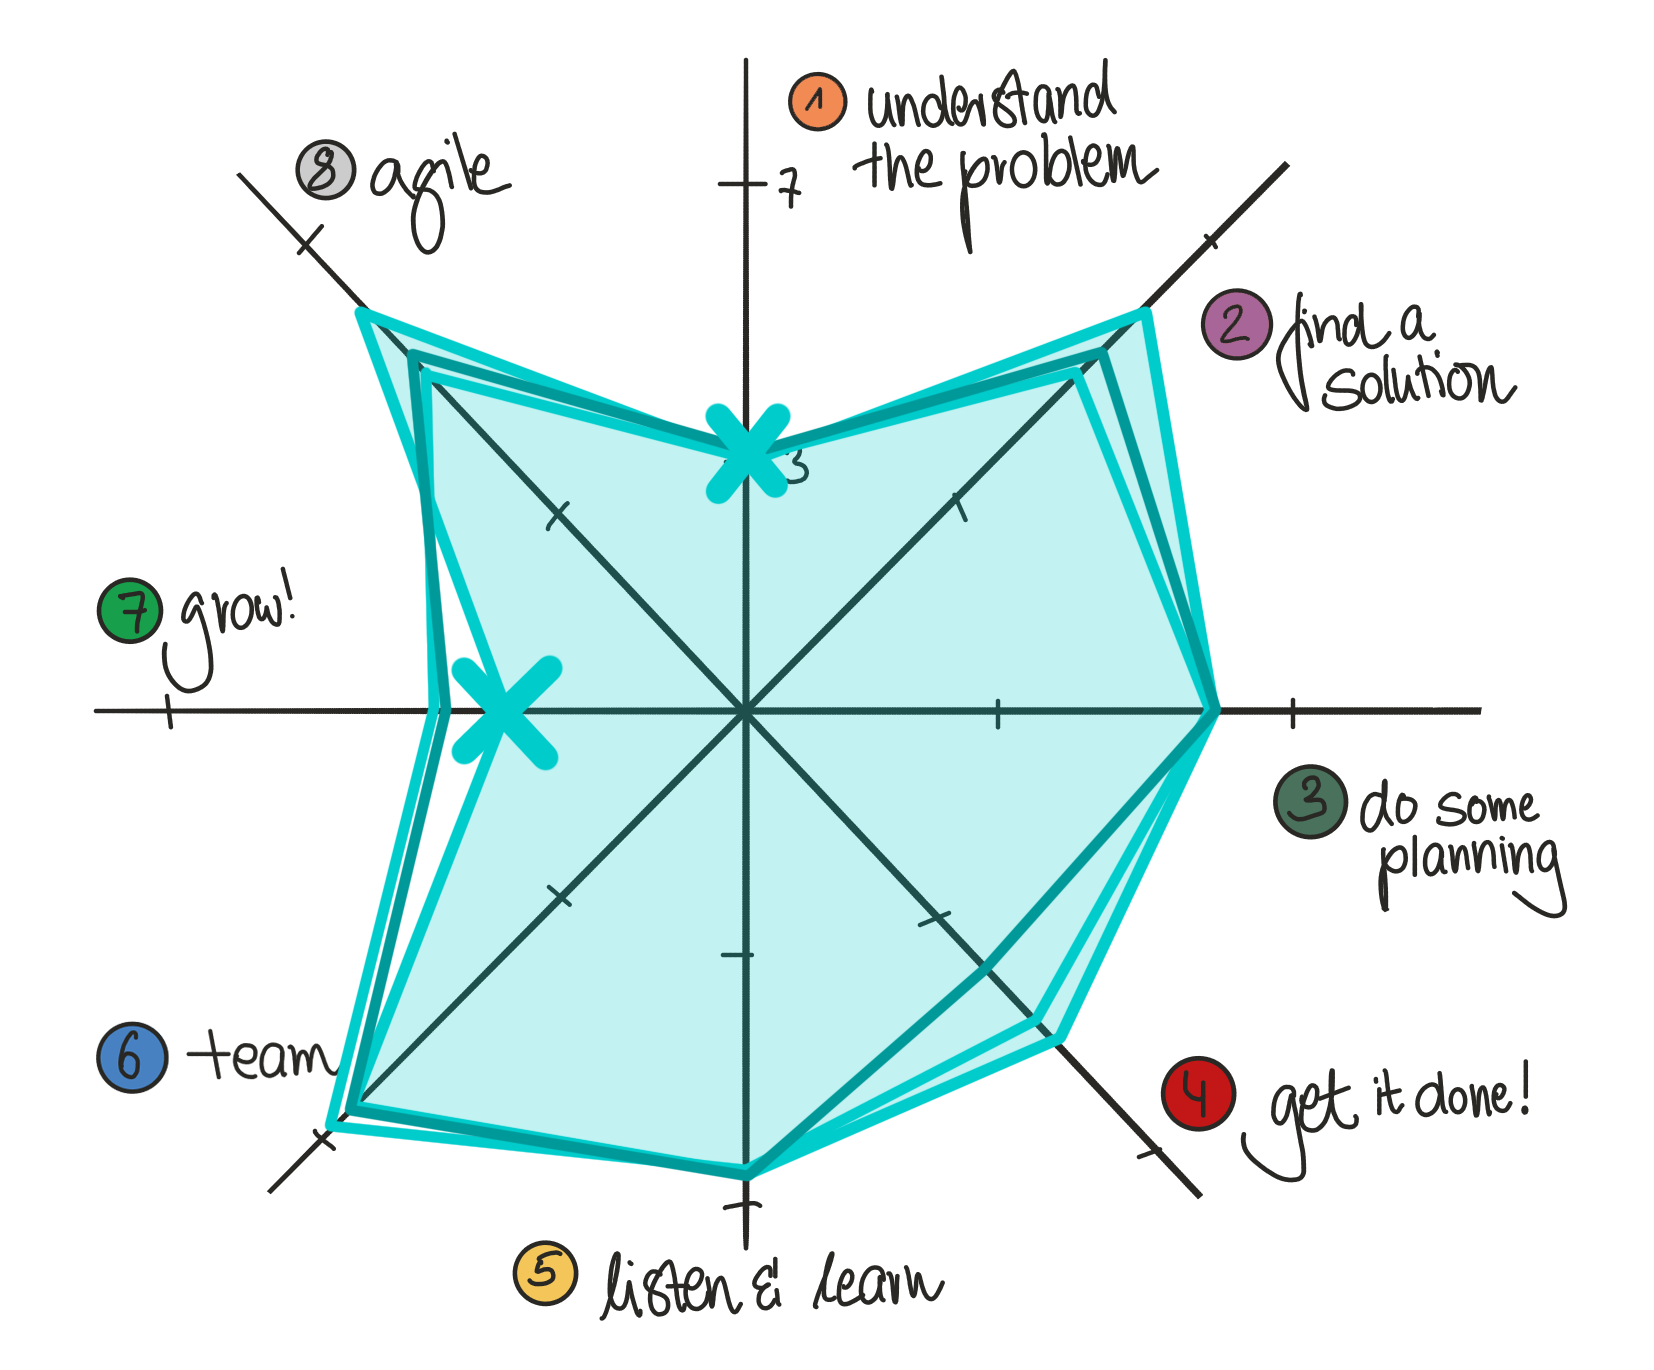 Example of a PM wheel showing a radar graph. Quadrants include understand the problem, find a solution, do some planning, get it done, listen & learn, team, grow, and agile.